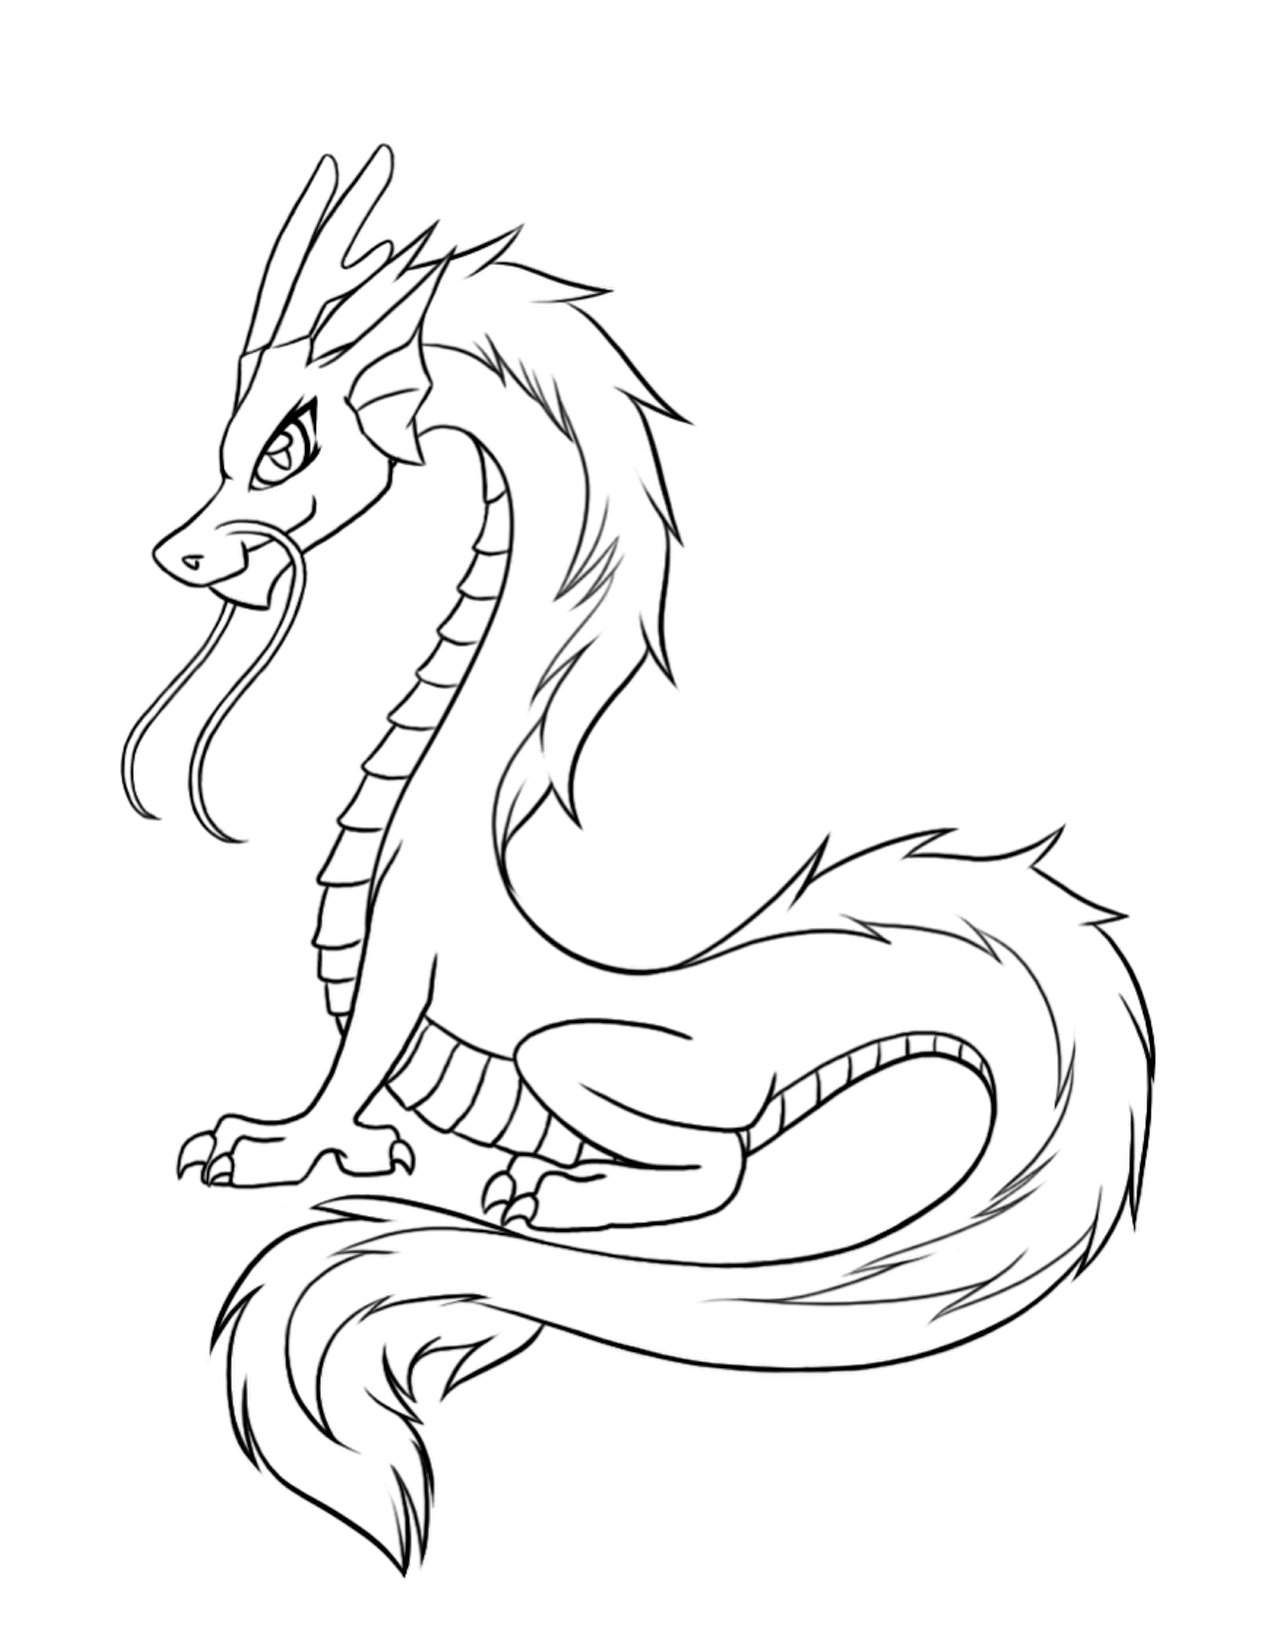 dragon pictures for kids dragon coloring pages printable activity shelter kids pictures dragon for